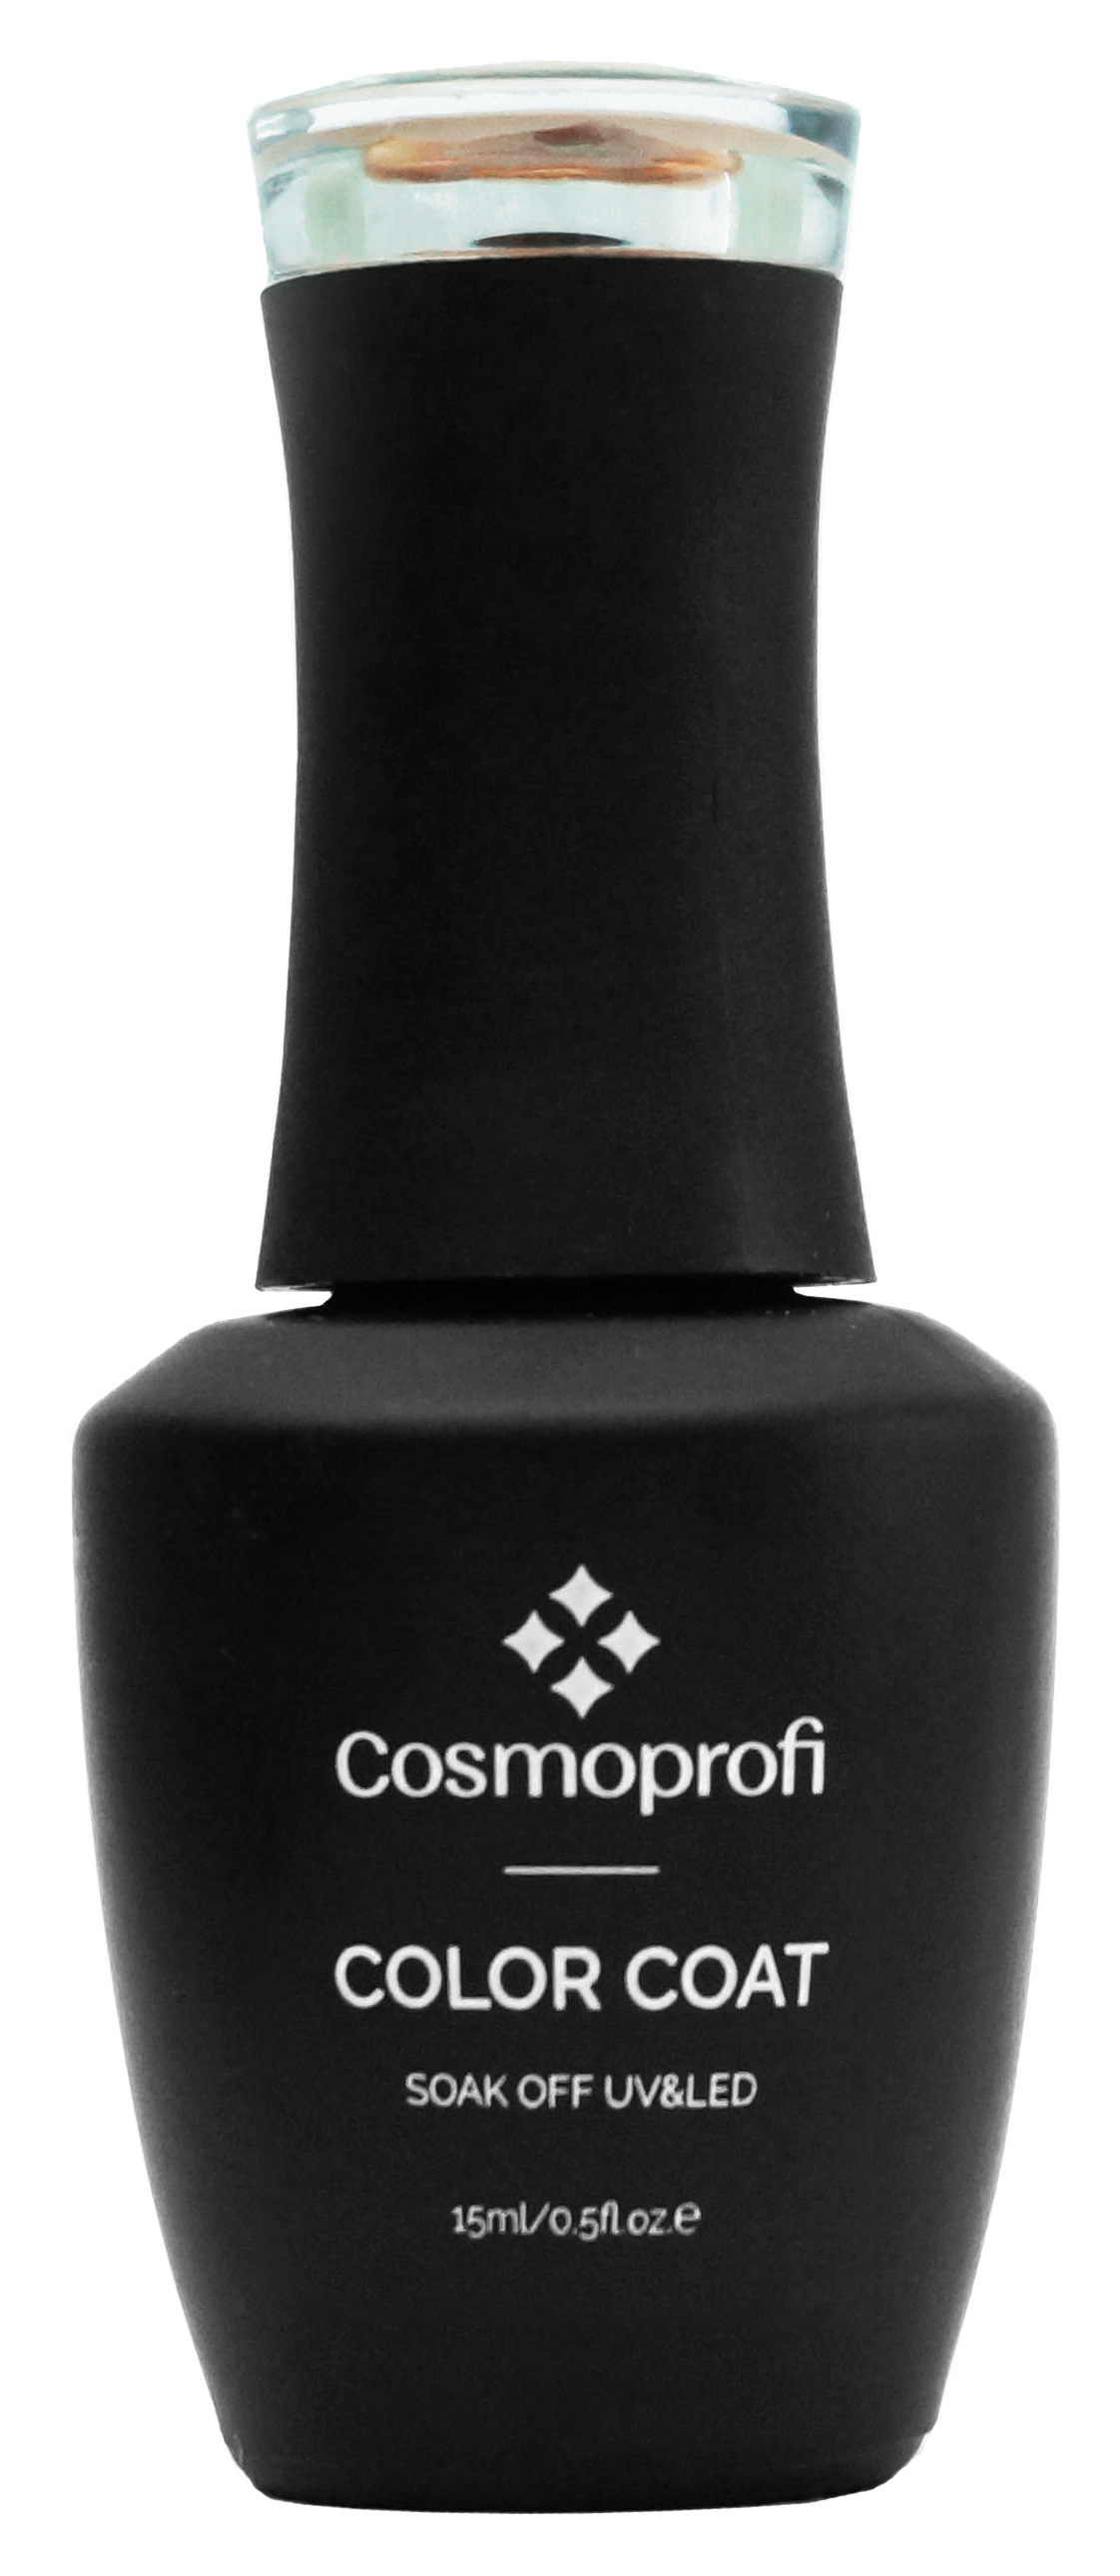 Гель-лак Cosmoprofi, Color coat № 180, 15 мл